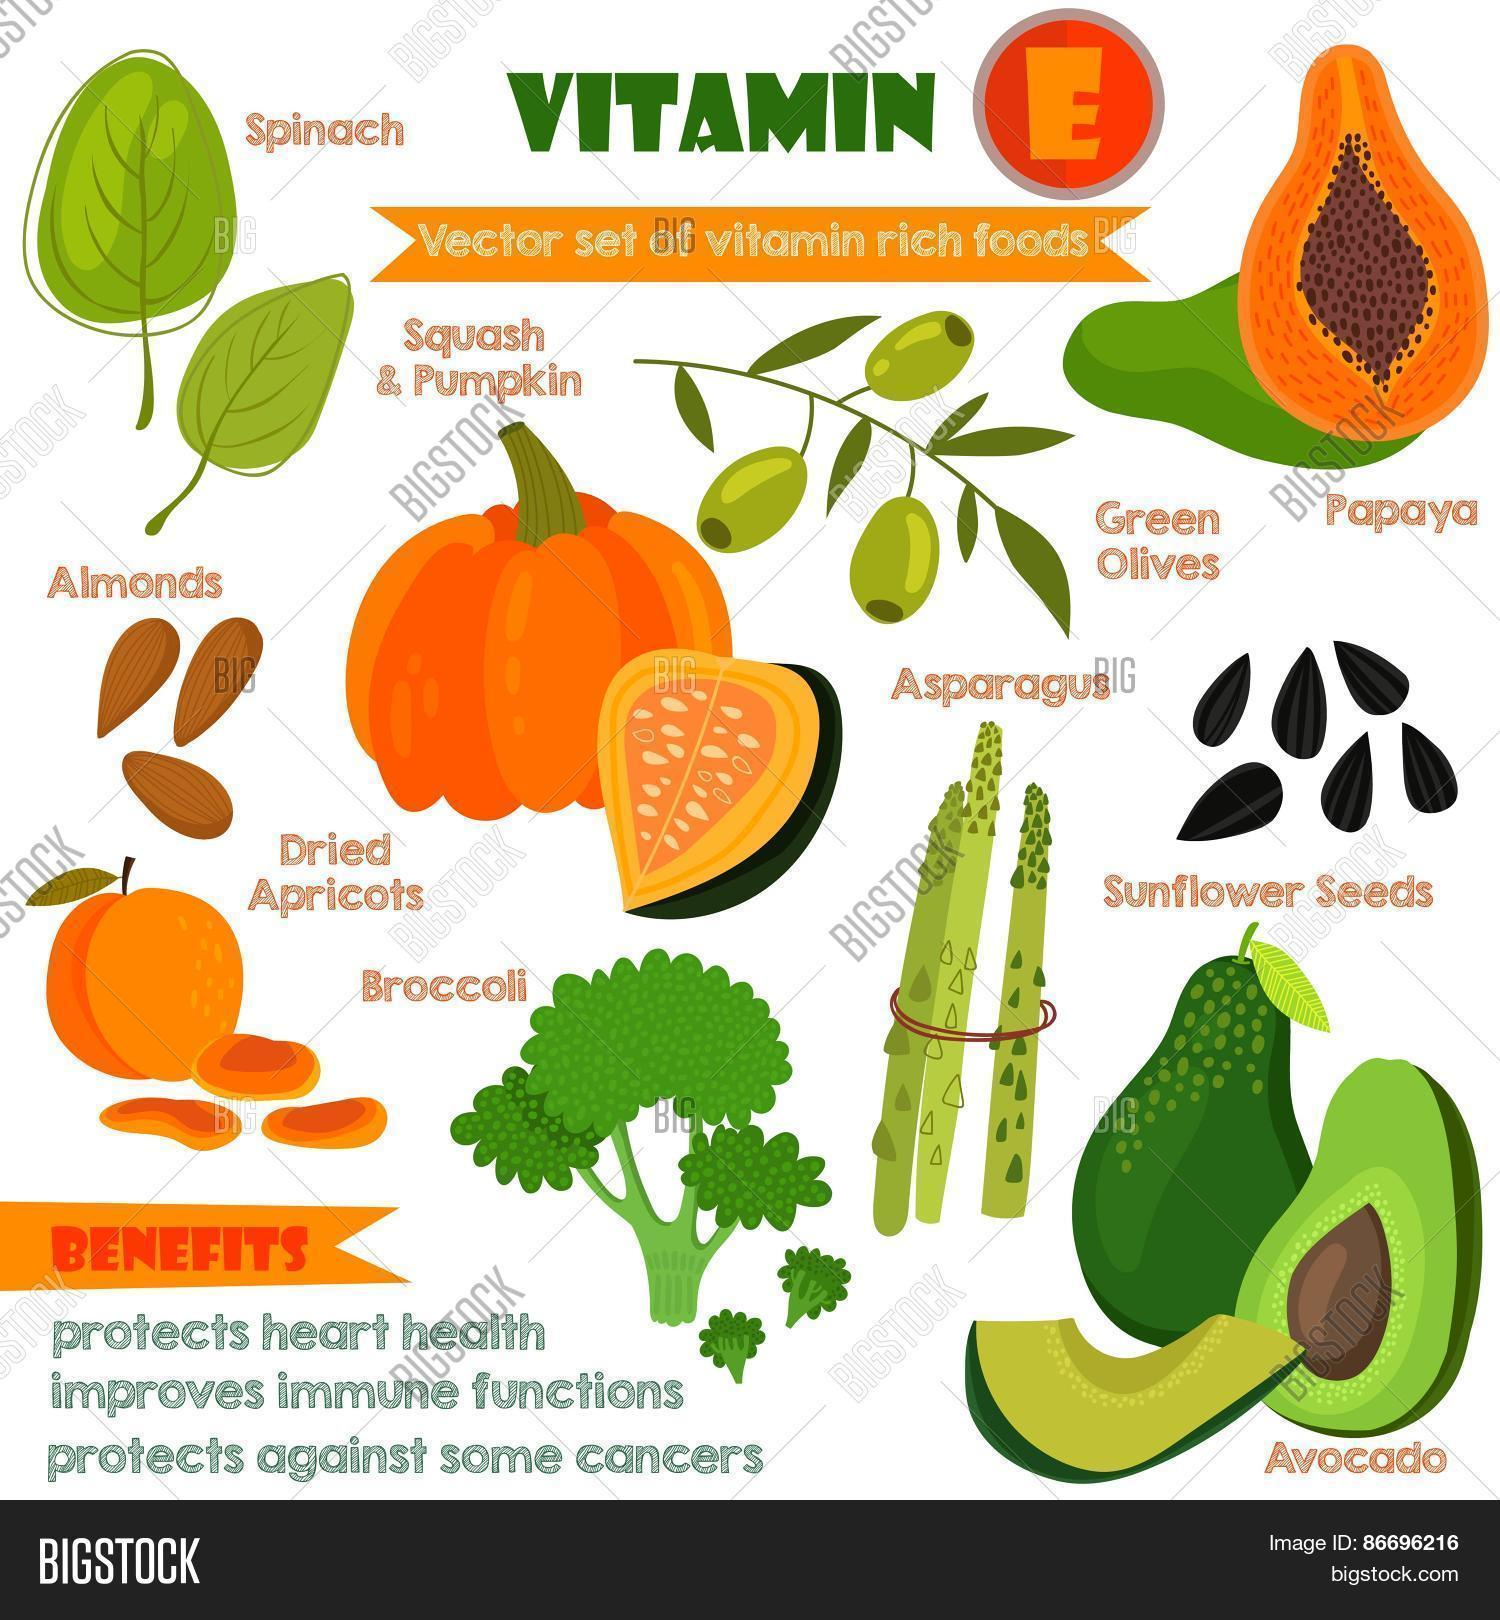 Fruits And Vegetables Containing Vitamin E Vitamins minerals vector photo free trial bigstock vitamins and minerals foods illustrator set 13ctor set of vitamin rich foods vitamin workwithnaturefo